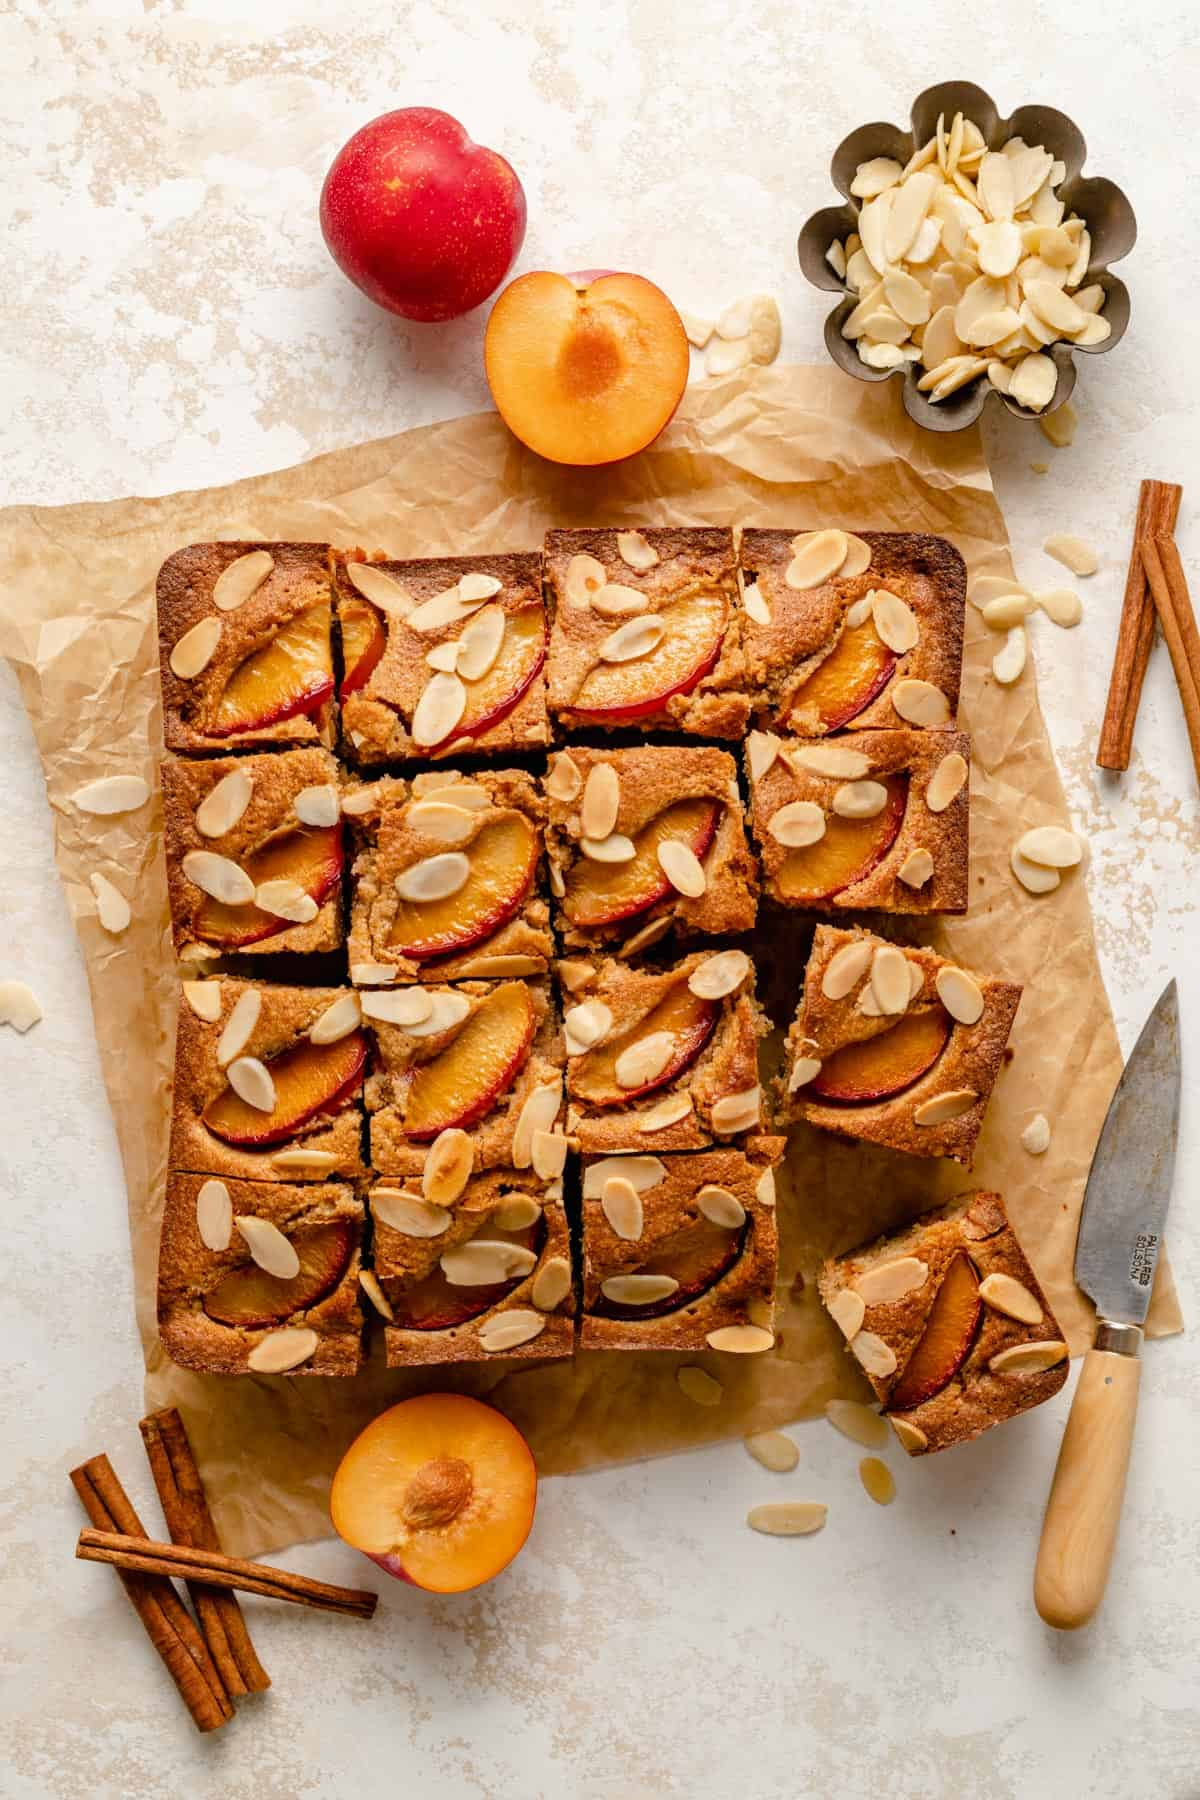 Plum and almond cake sliced into portions with plums, almonds and a knife around it